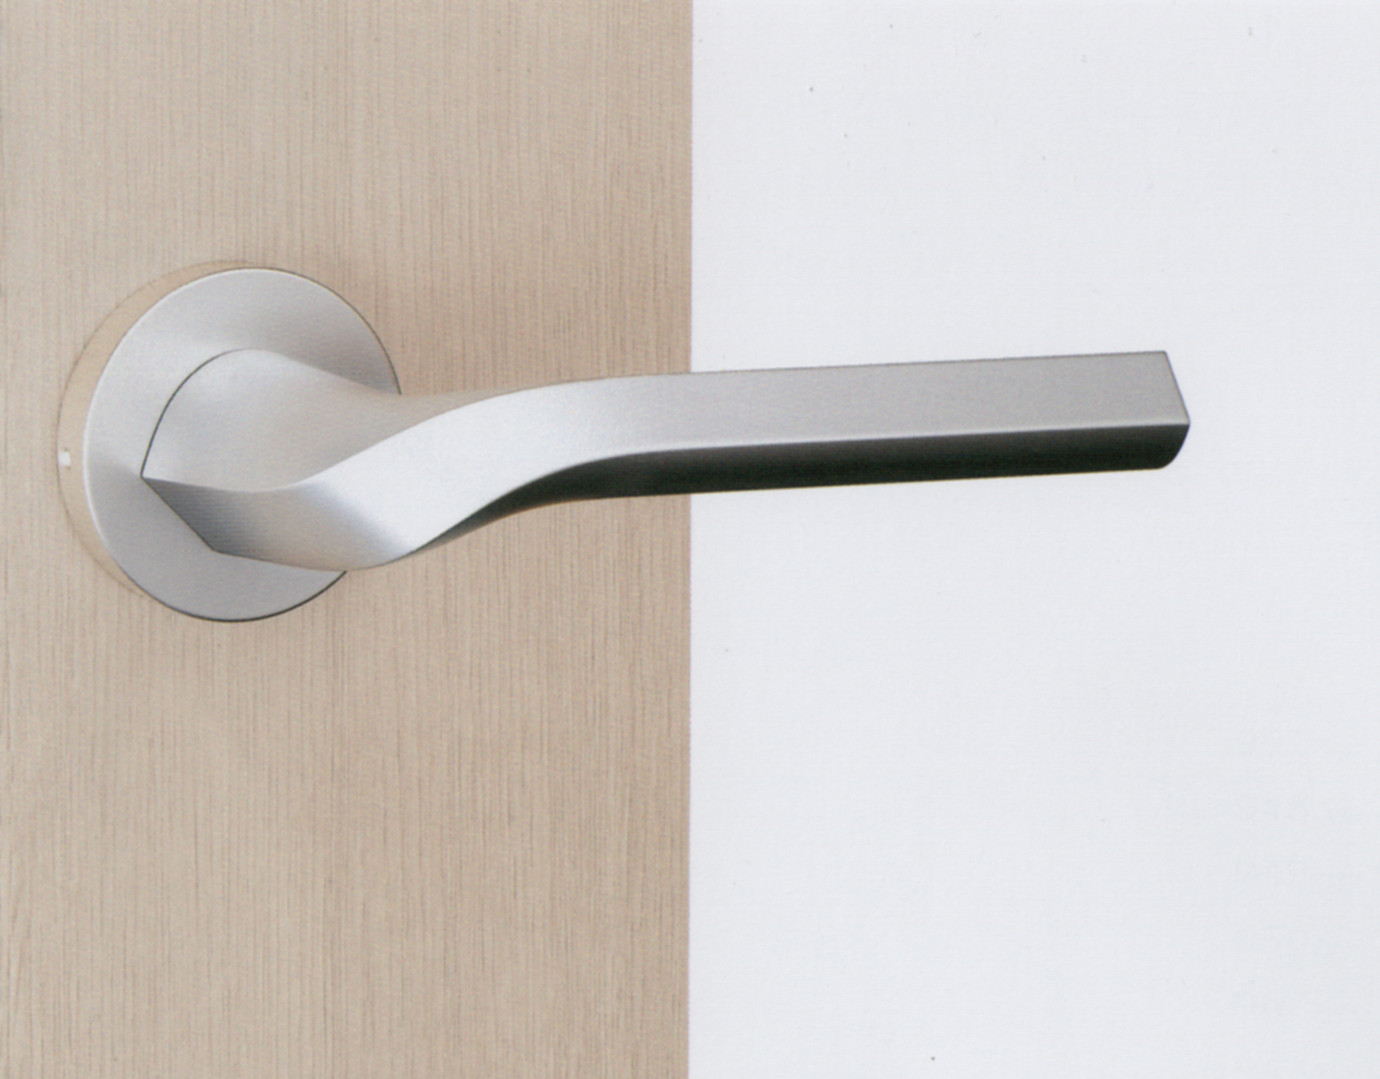 MIWA Door-handle Japan